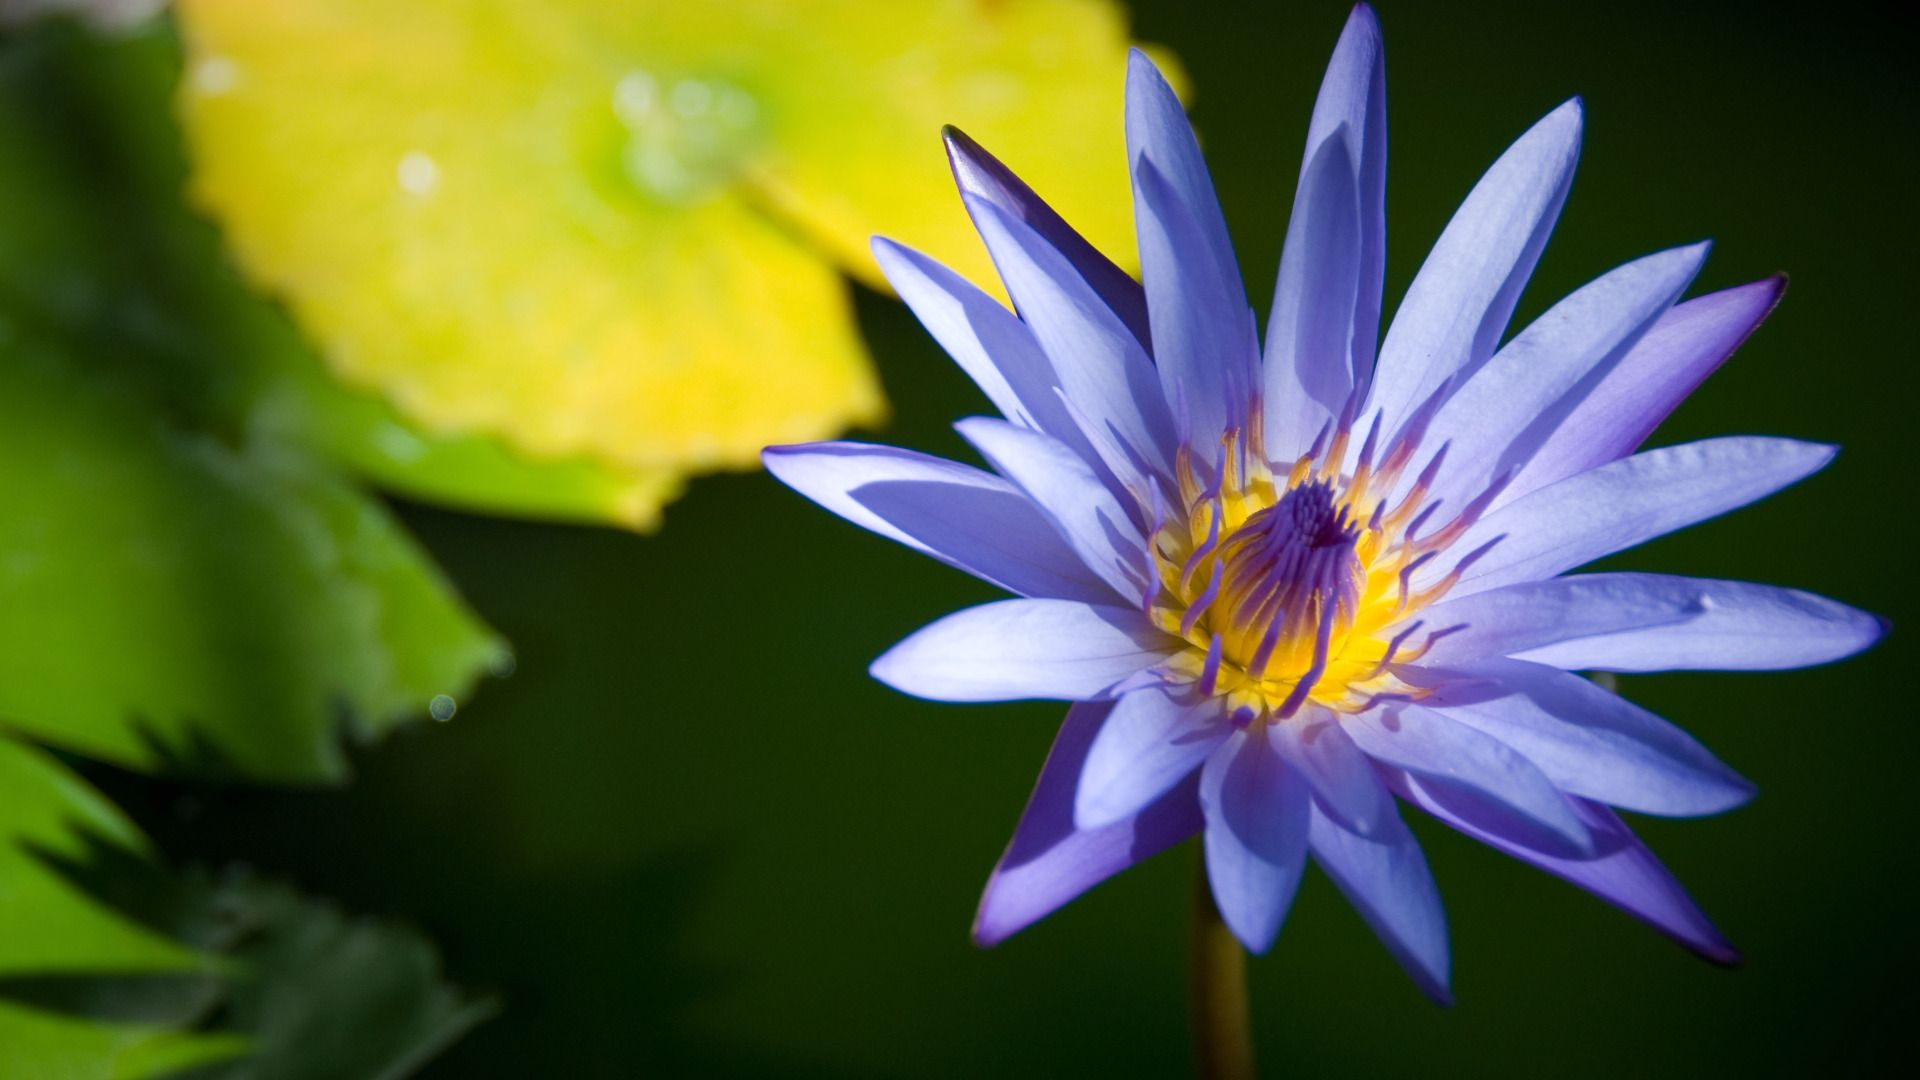 Blue Lotus Flower Splendid Wallpaper Hd Imgstocks Lotus